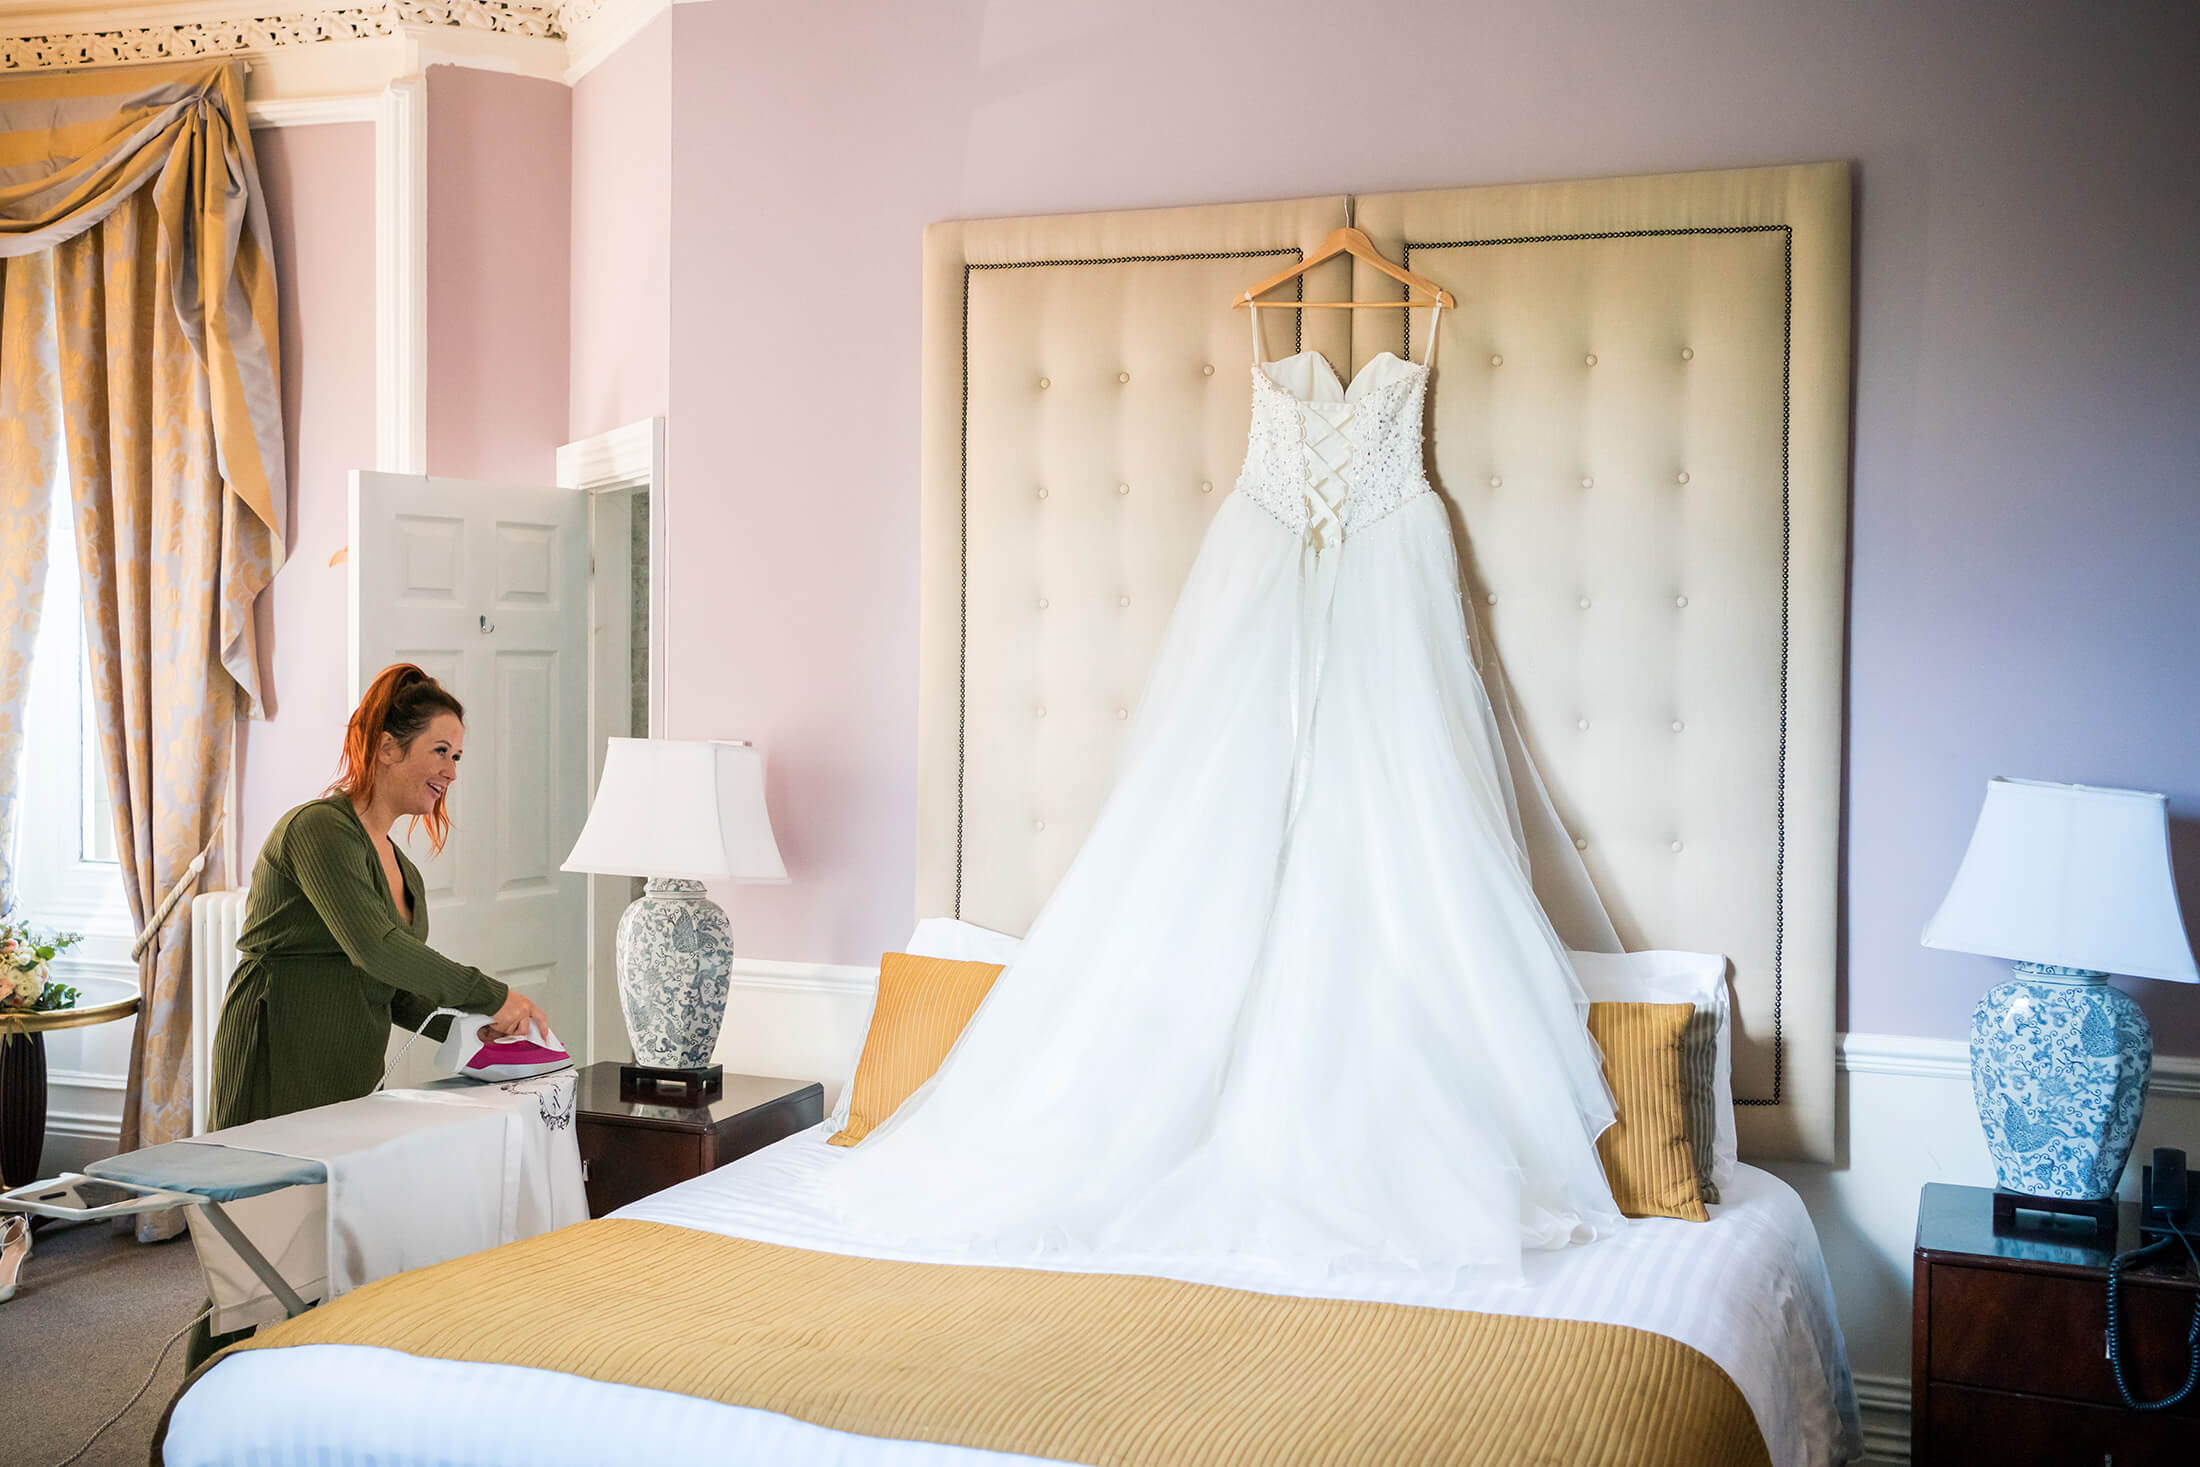 Hollin Hall Hotel Wedding Photographer - The bride irons her veil